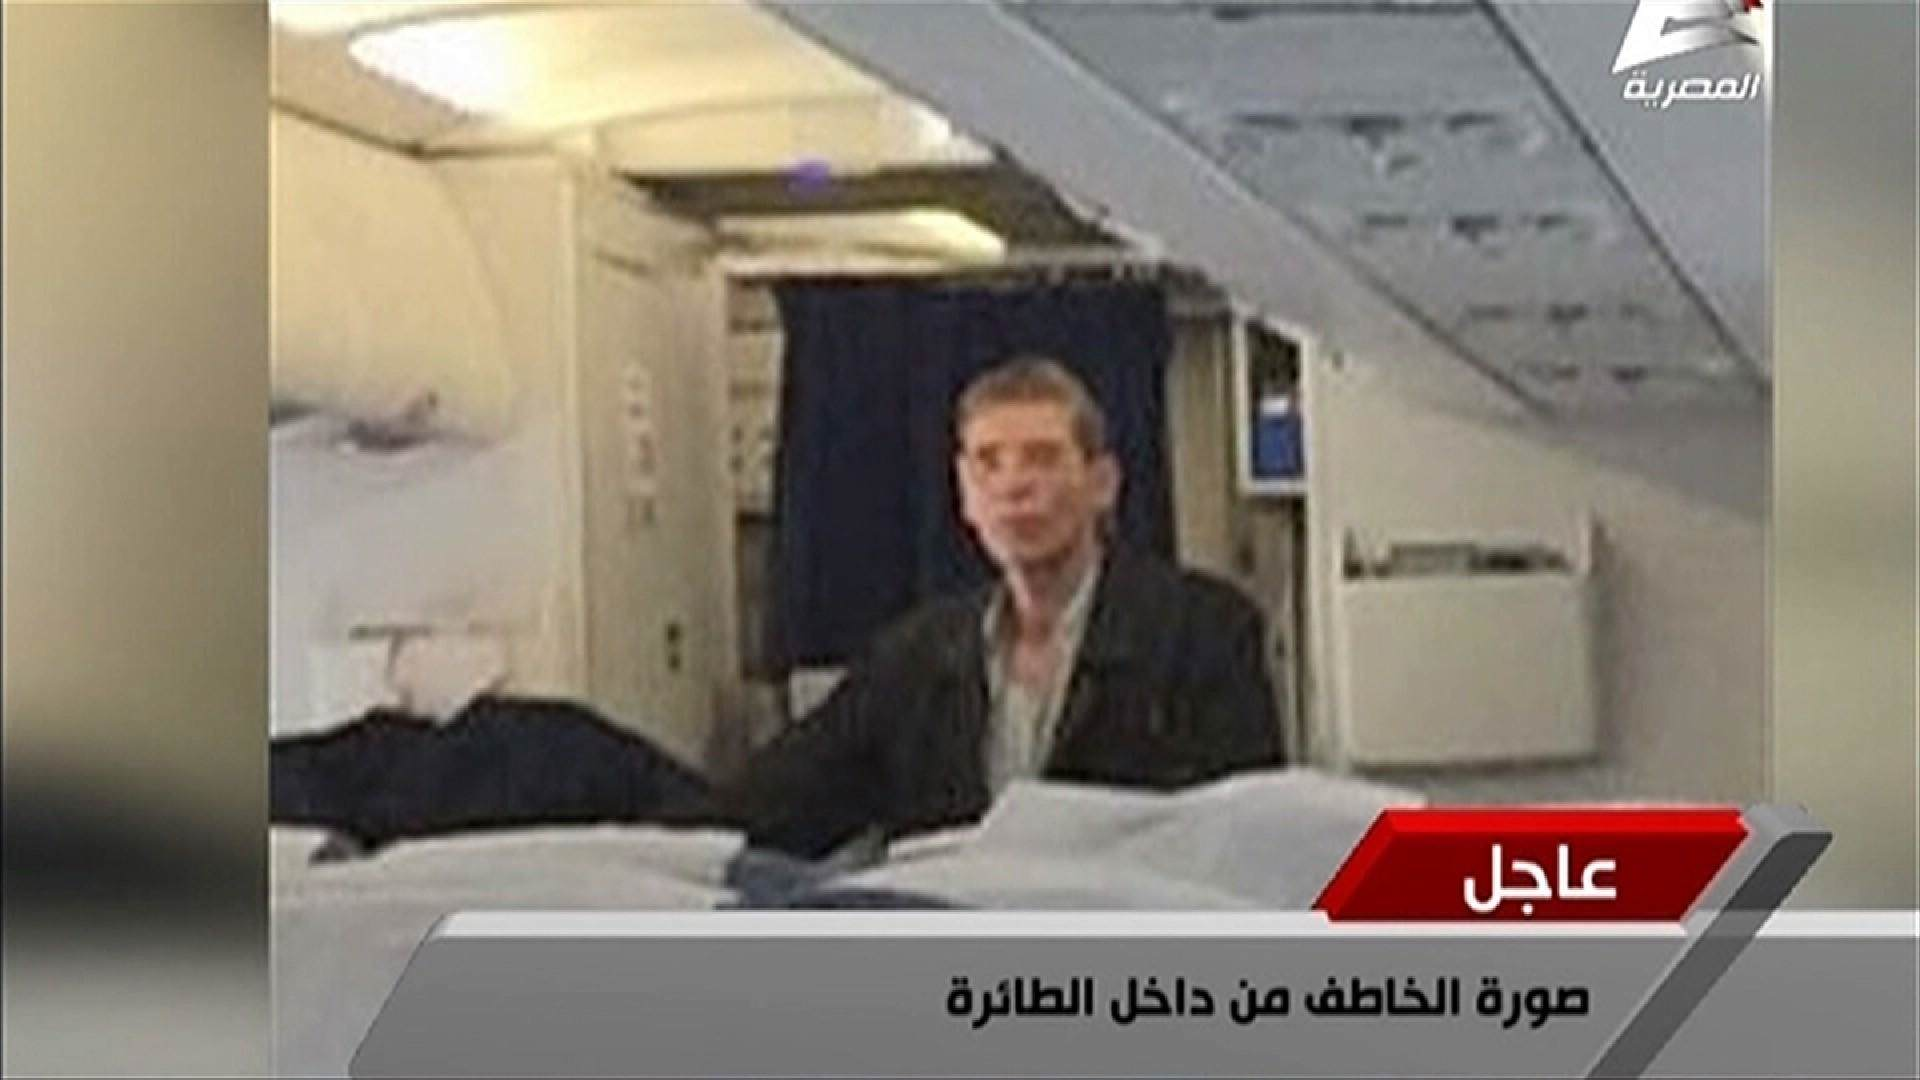 EgyptAir Update: Hijacking Not Looking Like an ISIS Attack hijack